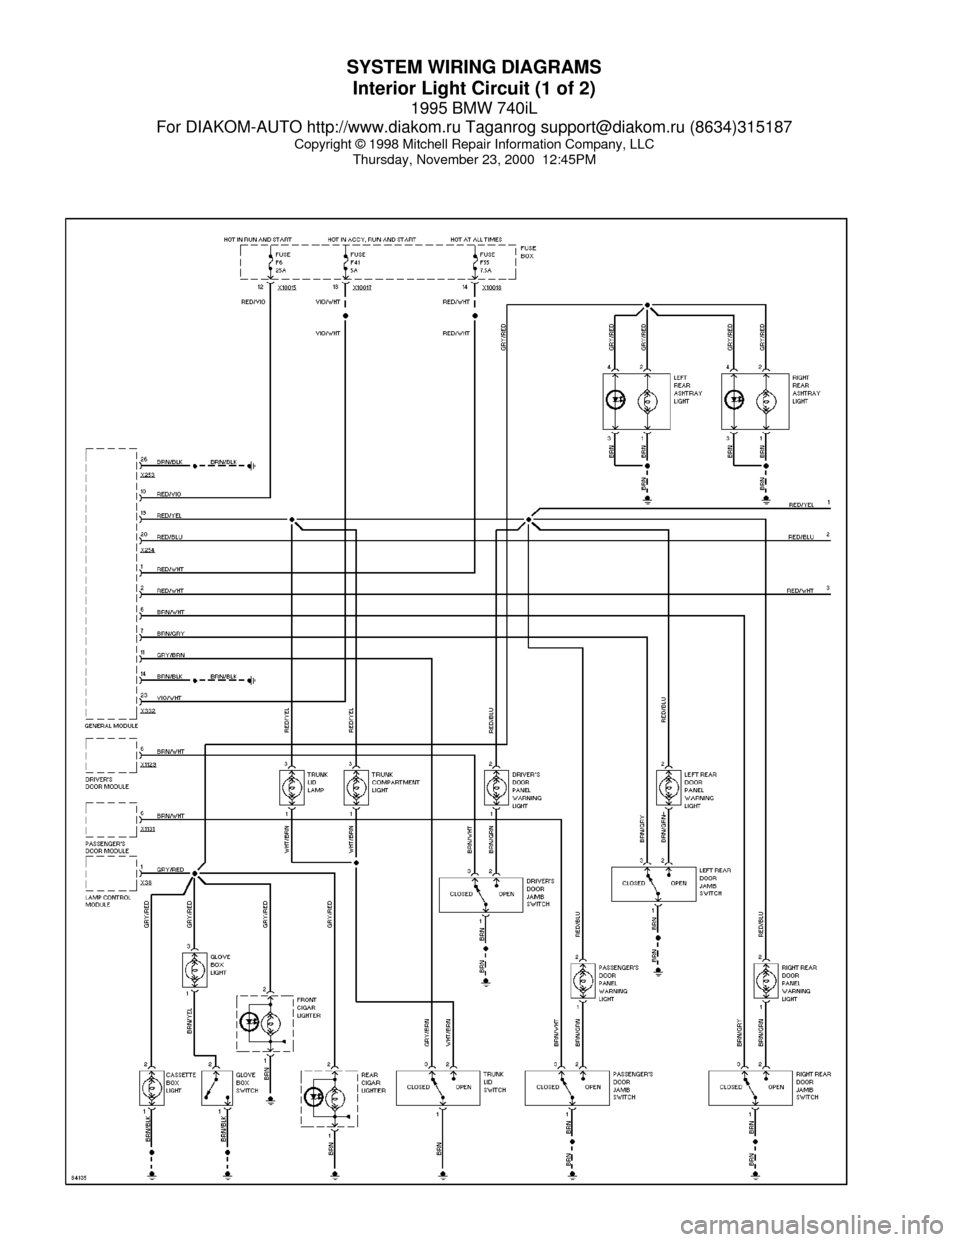 bmw e38 wiring diagram wiring diagram will be a thing \u2022 bmw e36 relay diagram bmw 740il 1995 e38 system wiring diagrams bmw e36 wiring diagram download bmw e38 wiring diagram